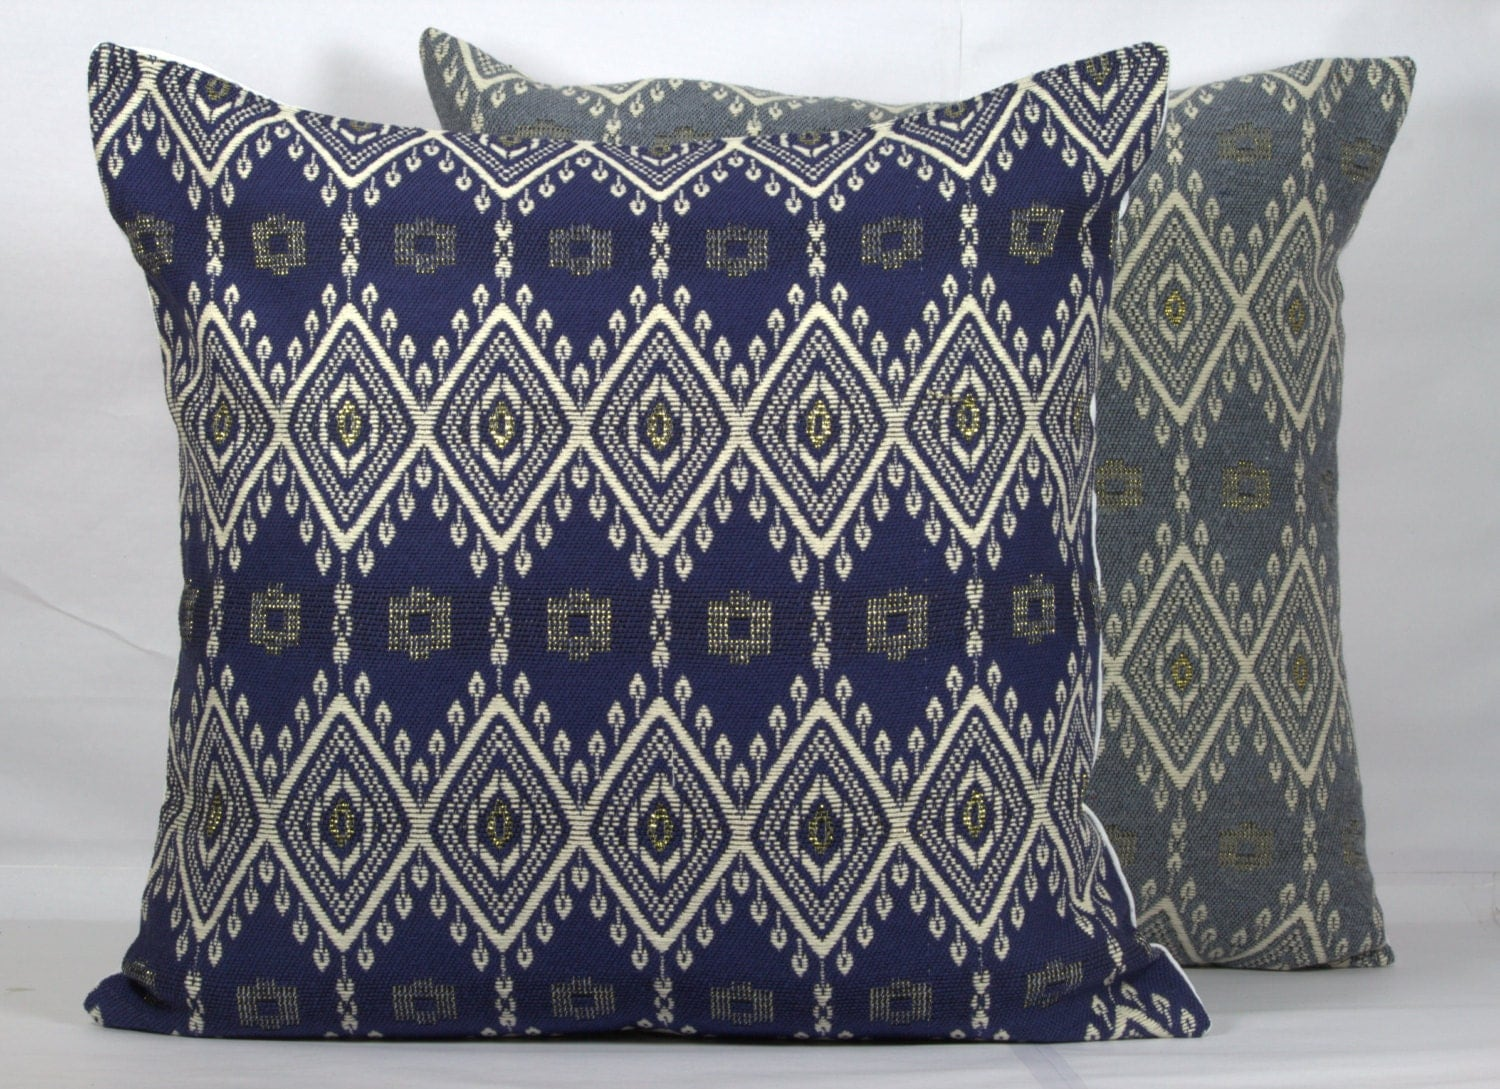 Grey Throw Pillows Cover 20x20 Gold Pillows 18x18 Throw